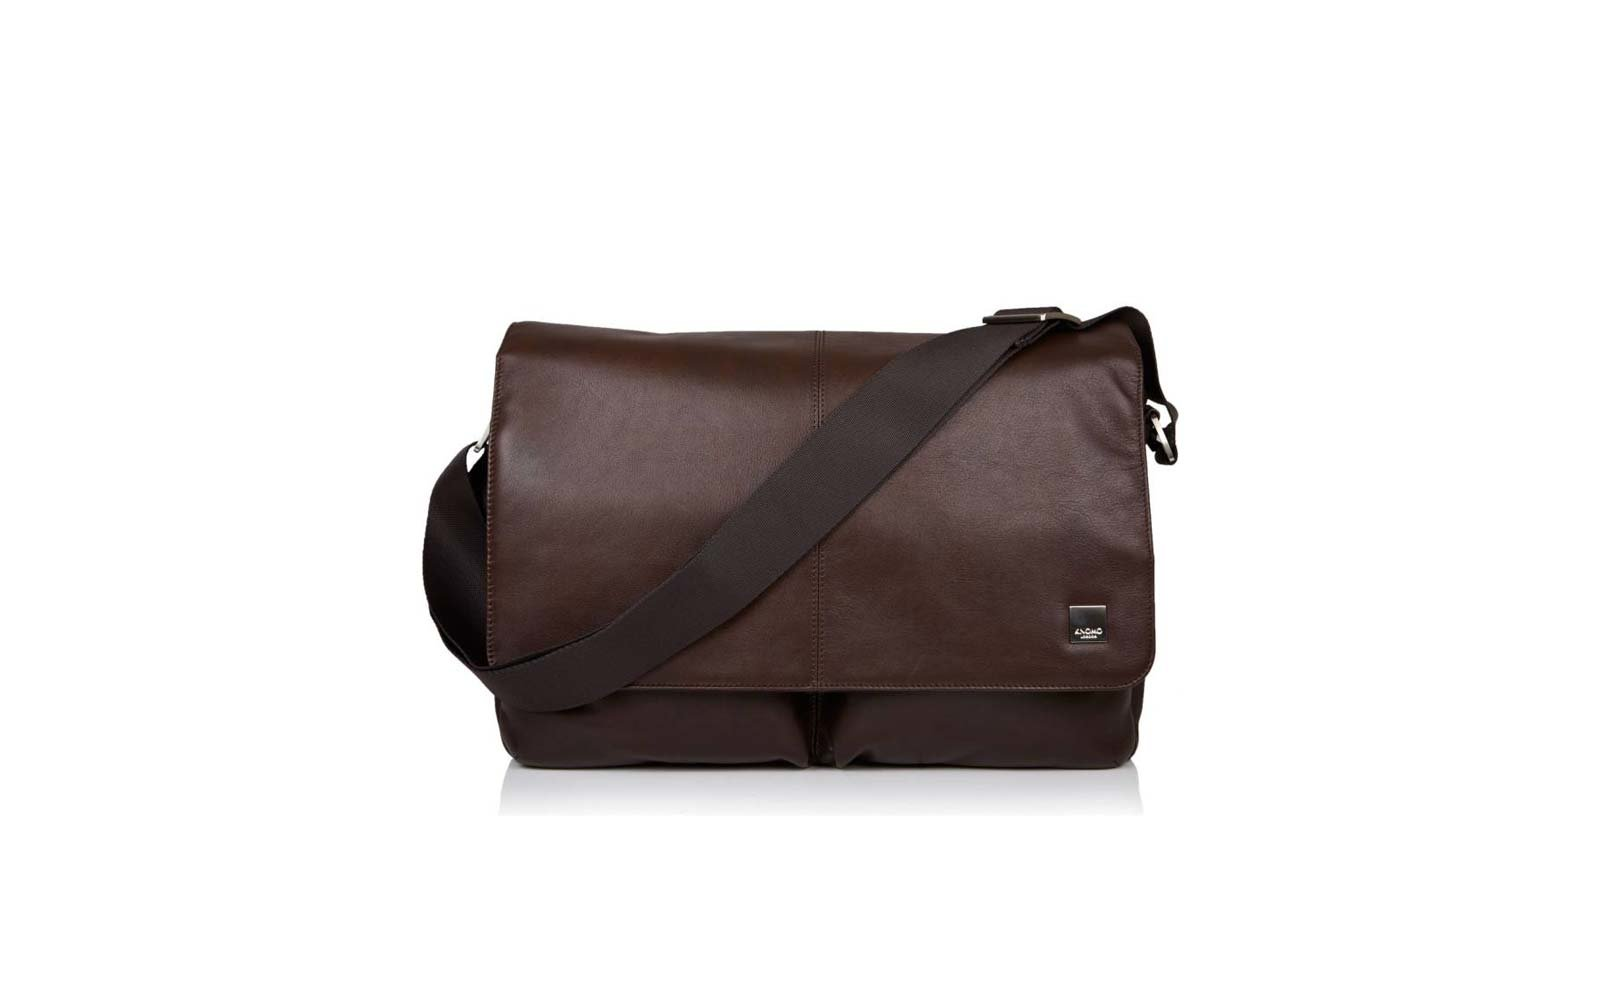 a54c5a6f452 The 9 Best Leather Messenger Bags for Men   Travel + Leisure